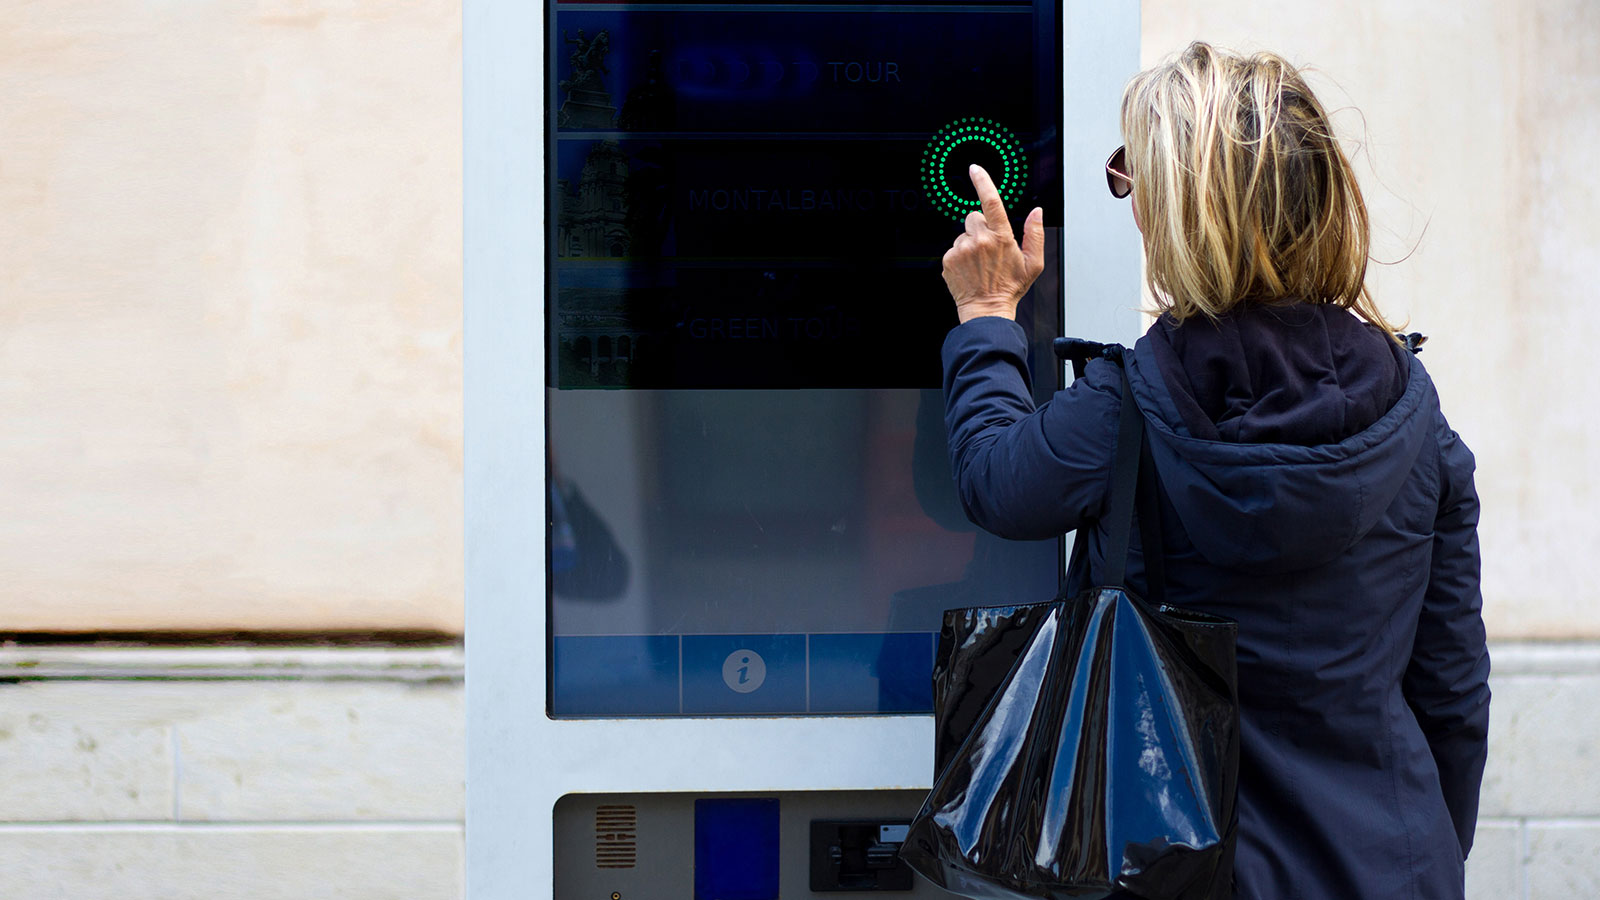 Woman using touchless technology instead of a public touchscreen